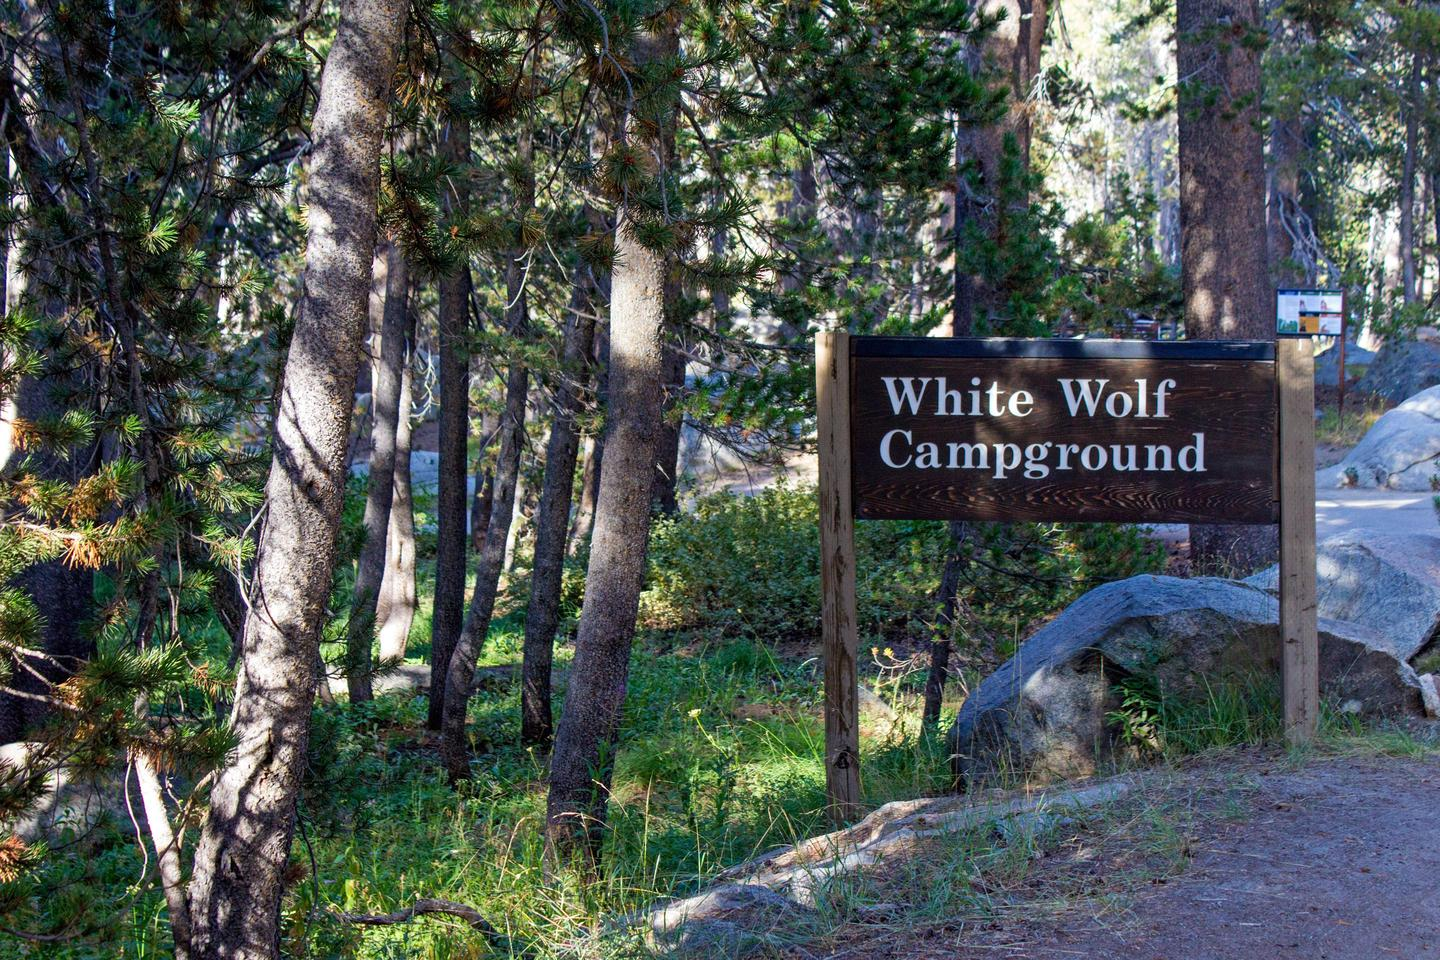 White Wolf CampgroundThe entrance to White Wolf Campground